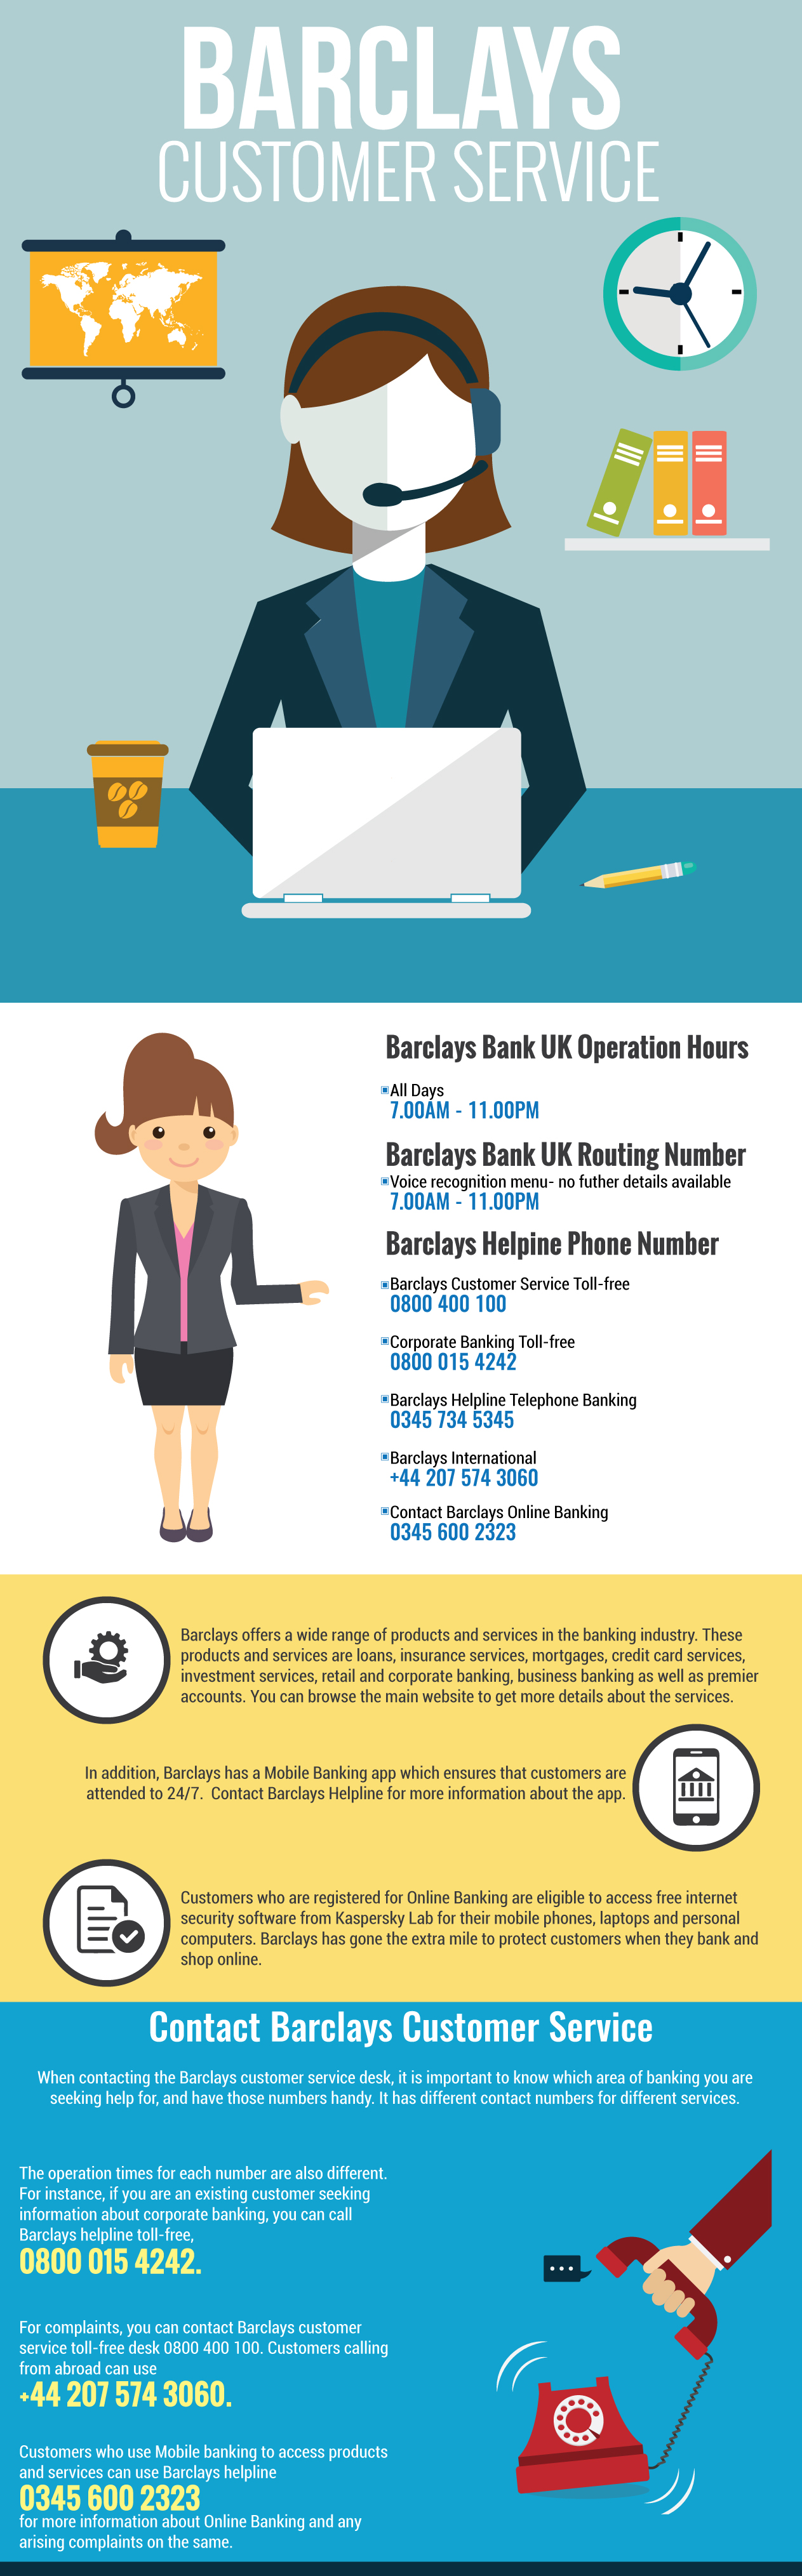 Barclays Customer Service? It's Easy If You Do It Smart! Call Now